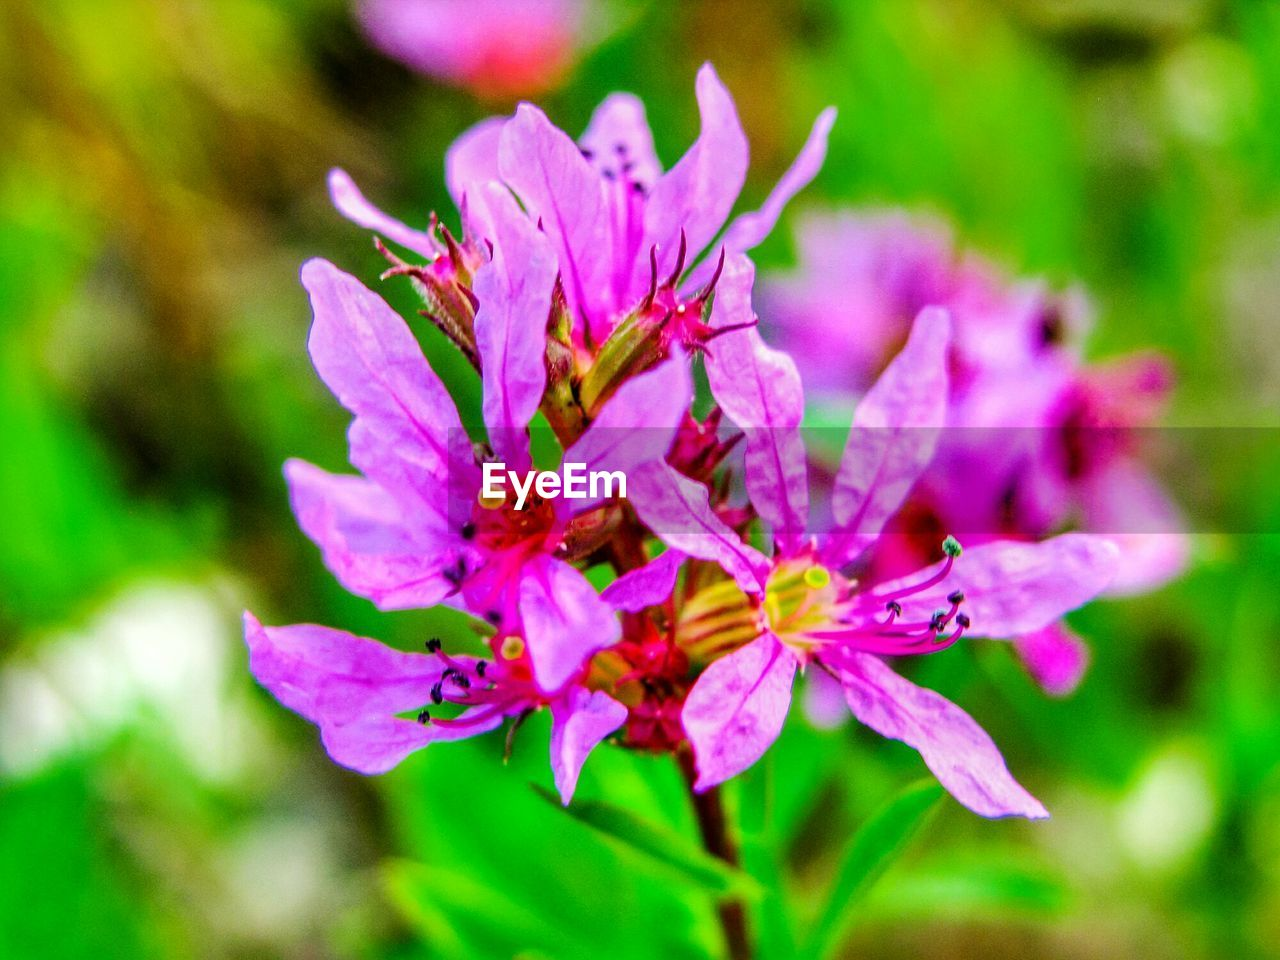 flower, flowering plant, plant, beauty in nature, fragility, vulnerability, freshness, growth, petal, close-up, pink color, inflorescence, day, nature, flower head, selective focus, focus on foreground, no people, outdoors, pollen, springtime, purple, spring